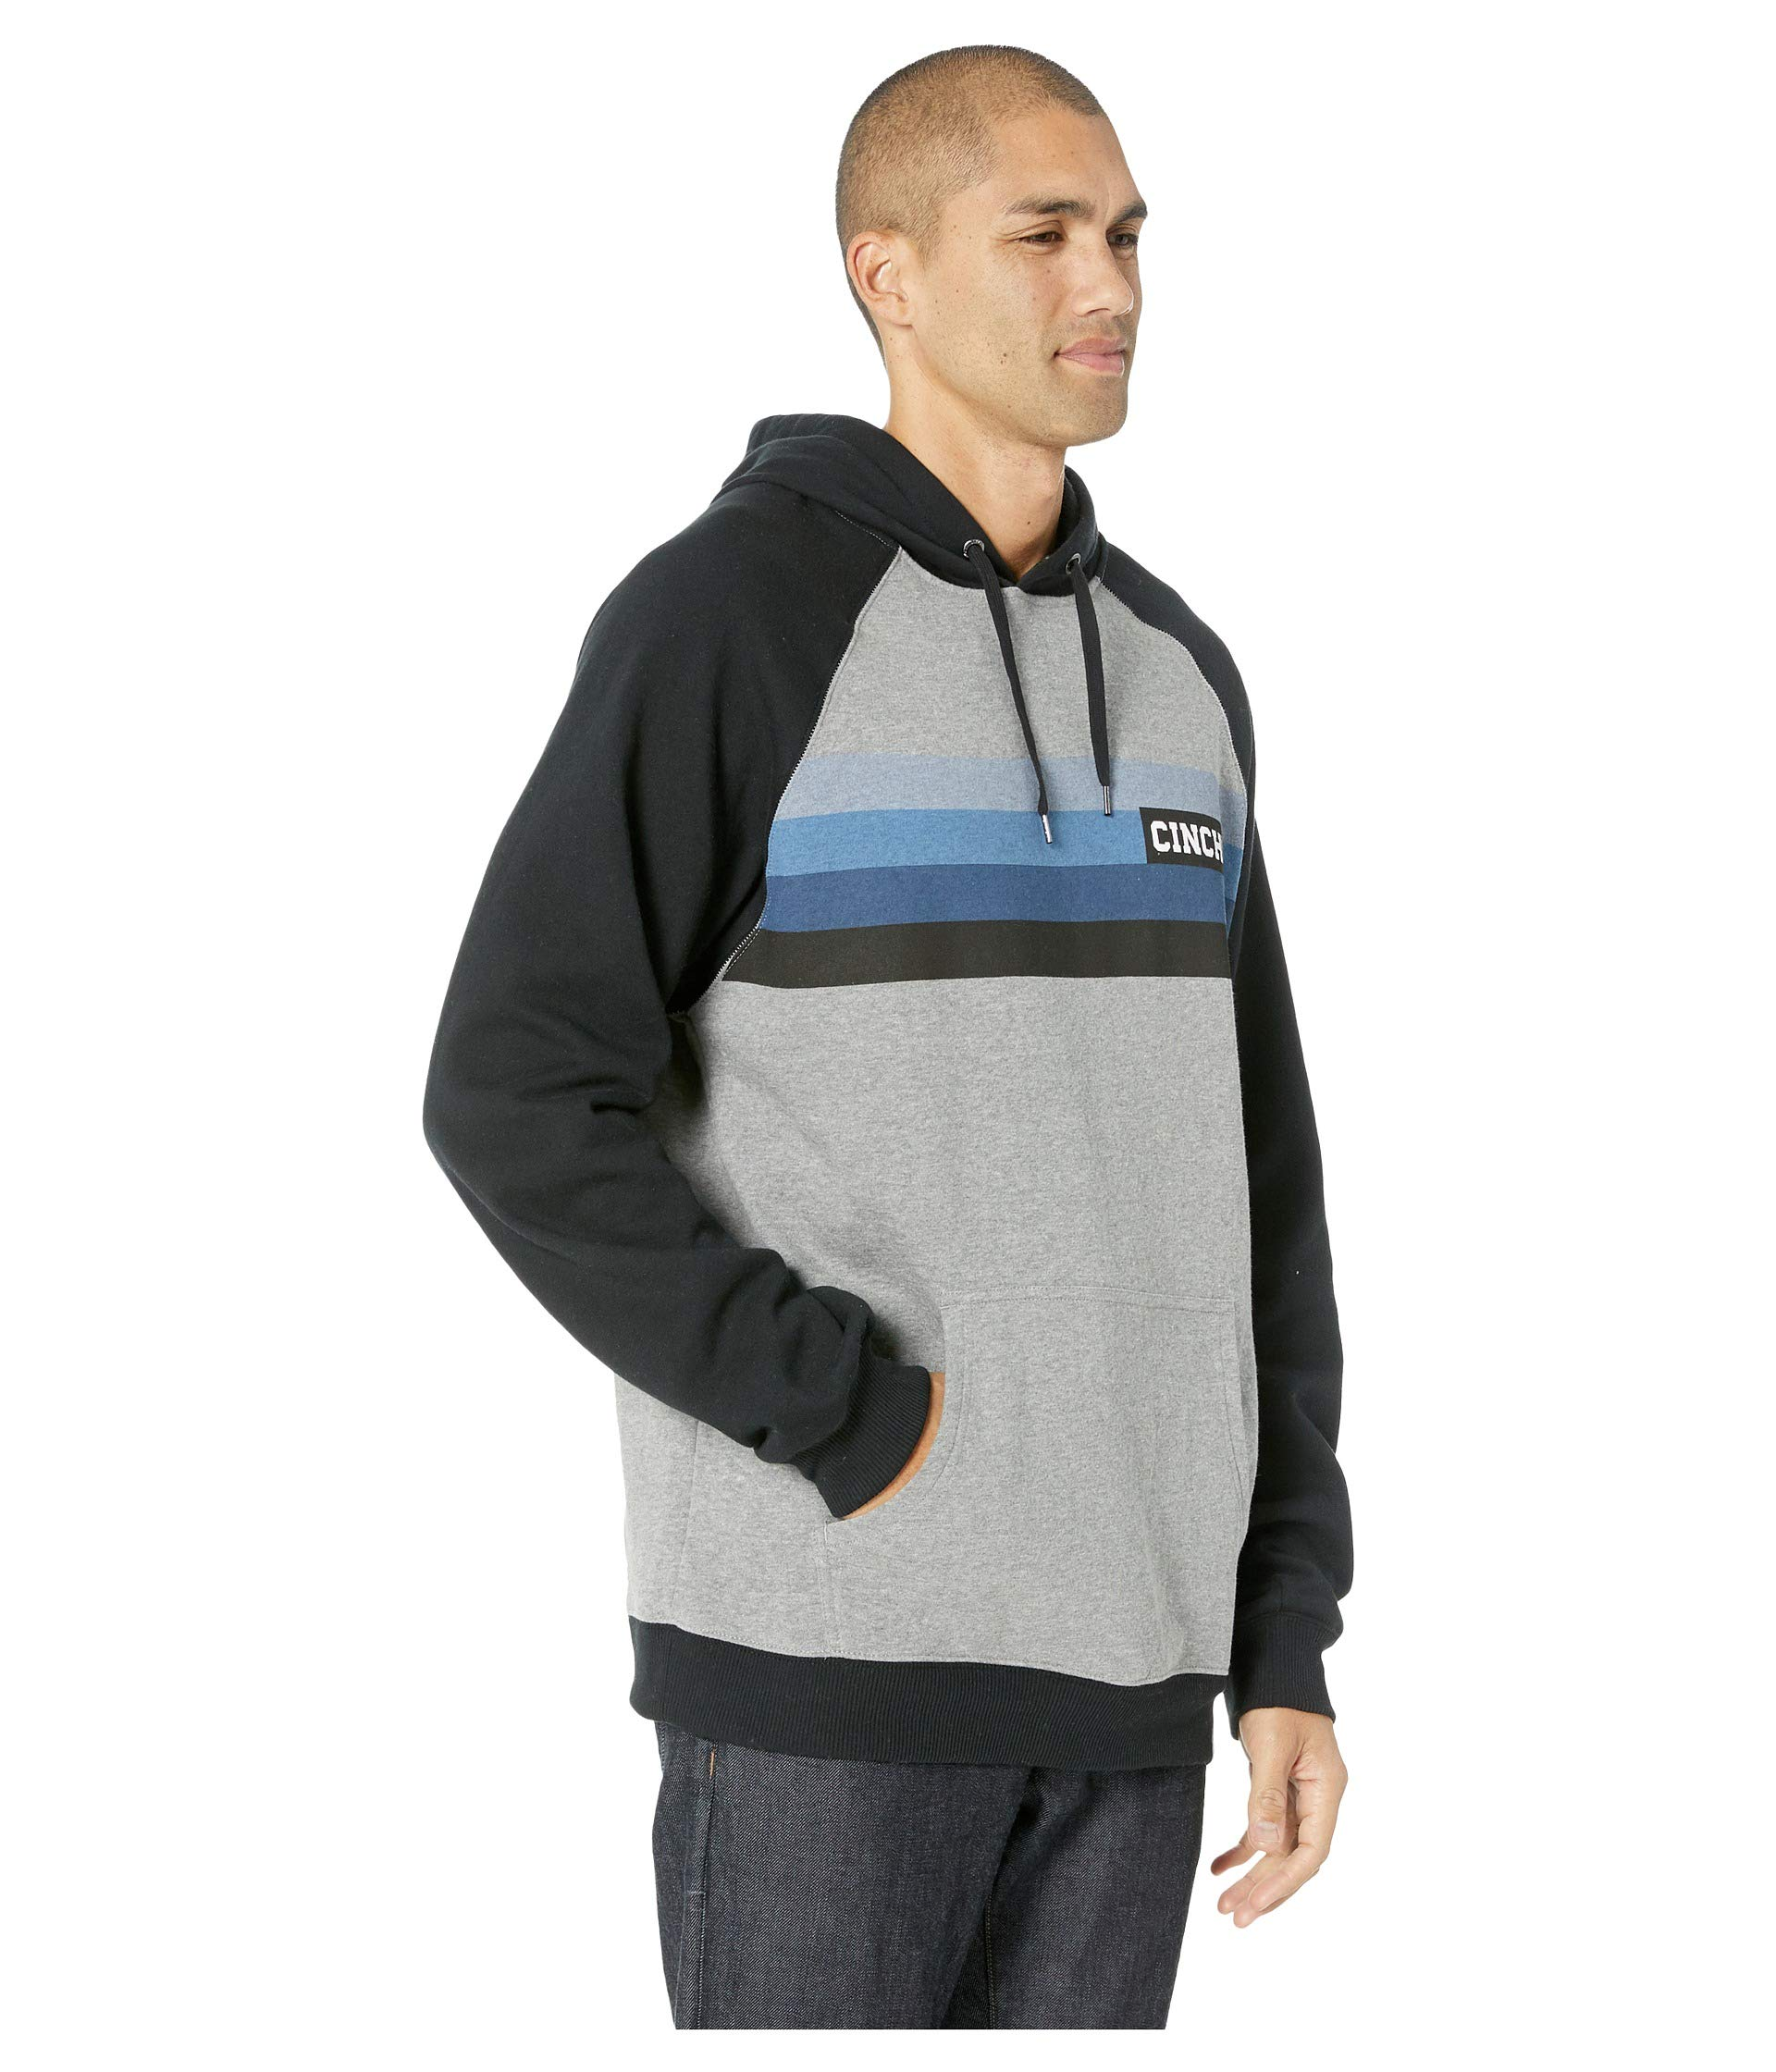 Fleece Cinch Hoodie Cinch Multicolor Fleece zEwHzdq